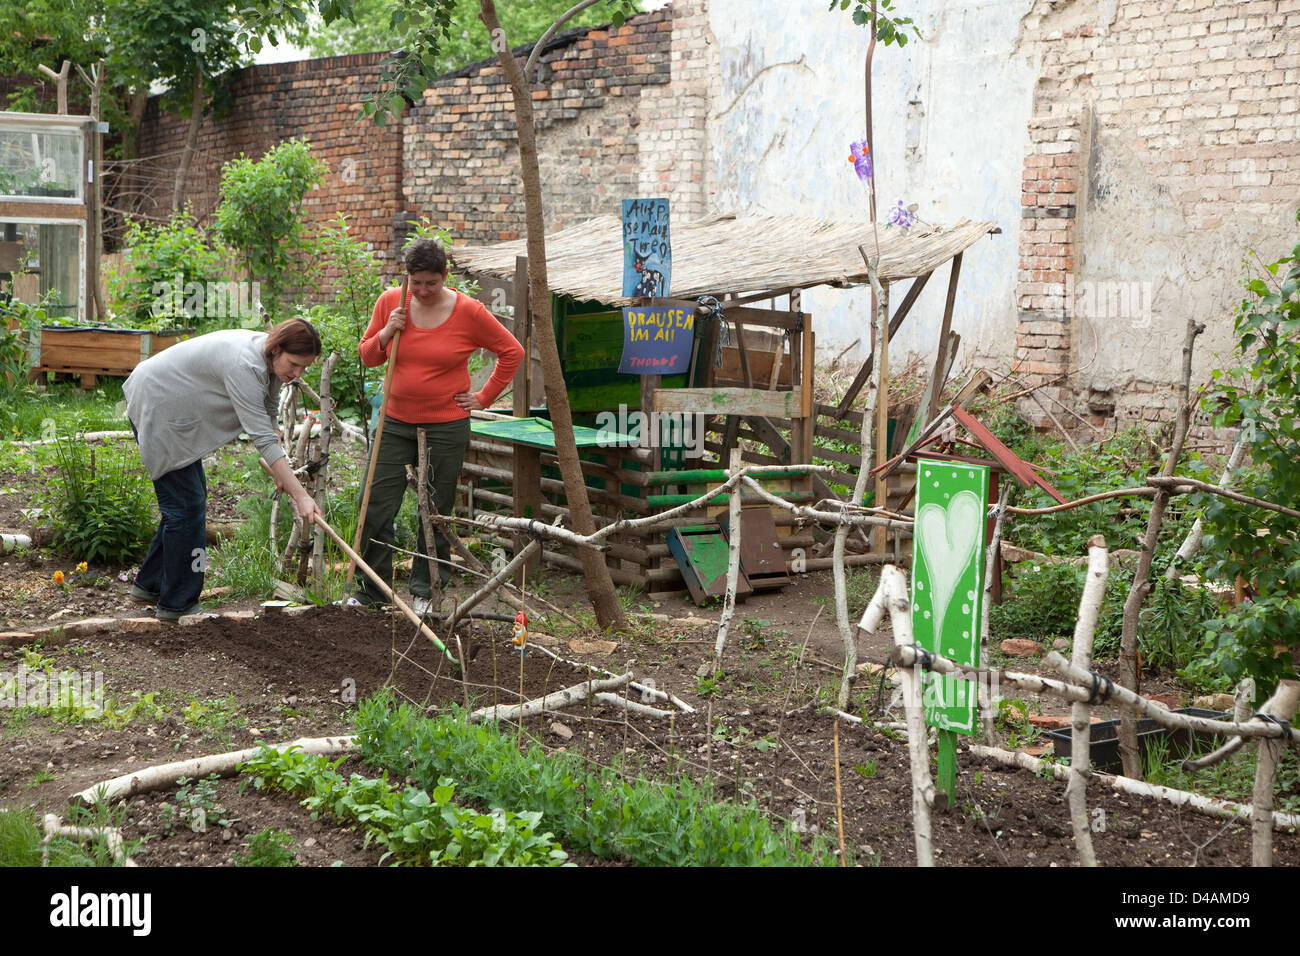 Halle, Germany, the allotment Post cult - Stock Image